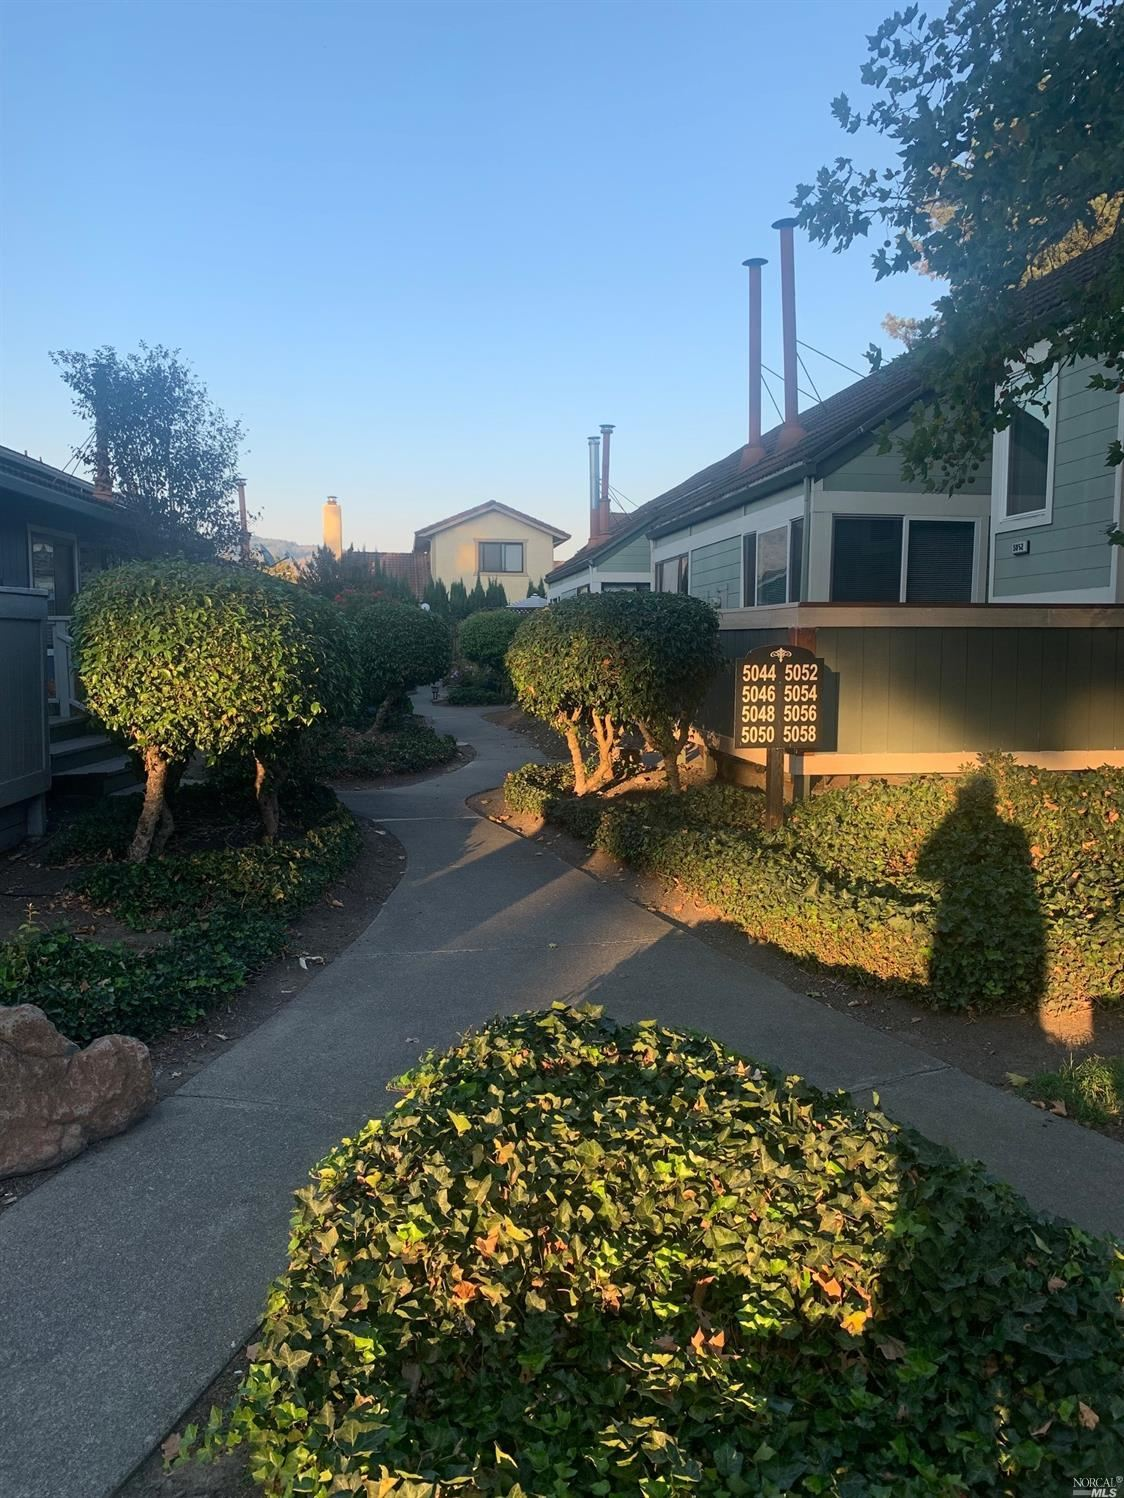 5058 - 938 Country Club Dr, Rohnert Park, CA 94928 - MLS#: 321091073